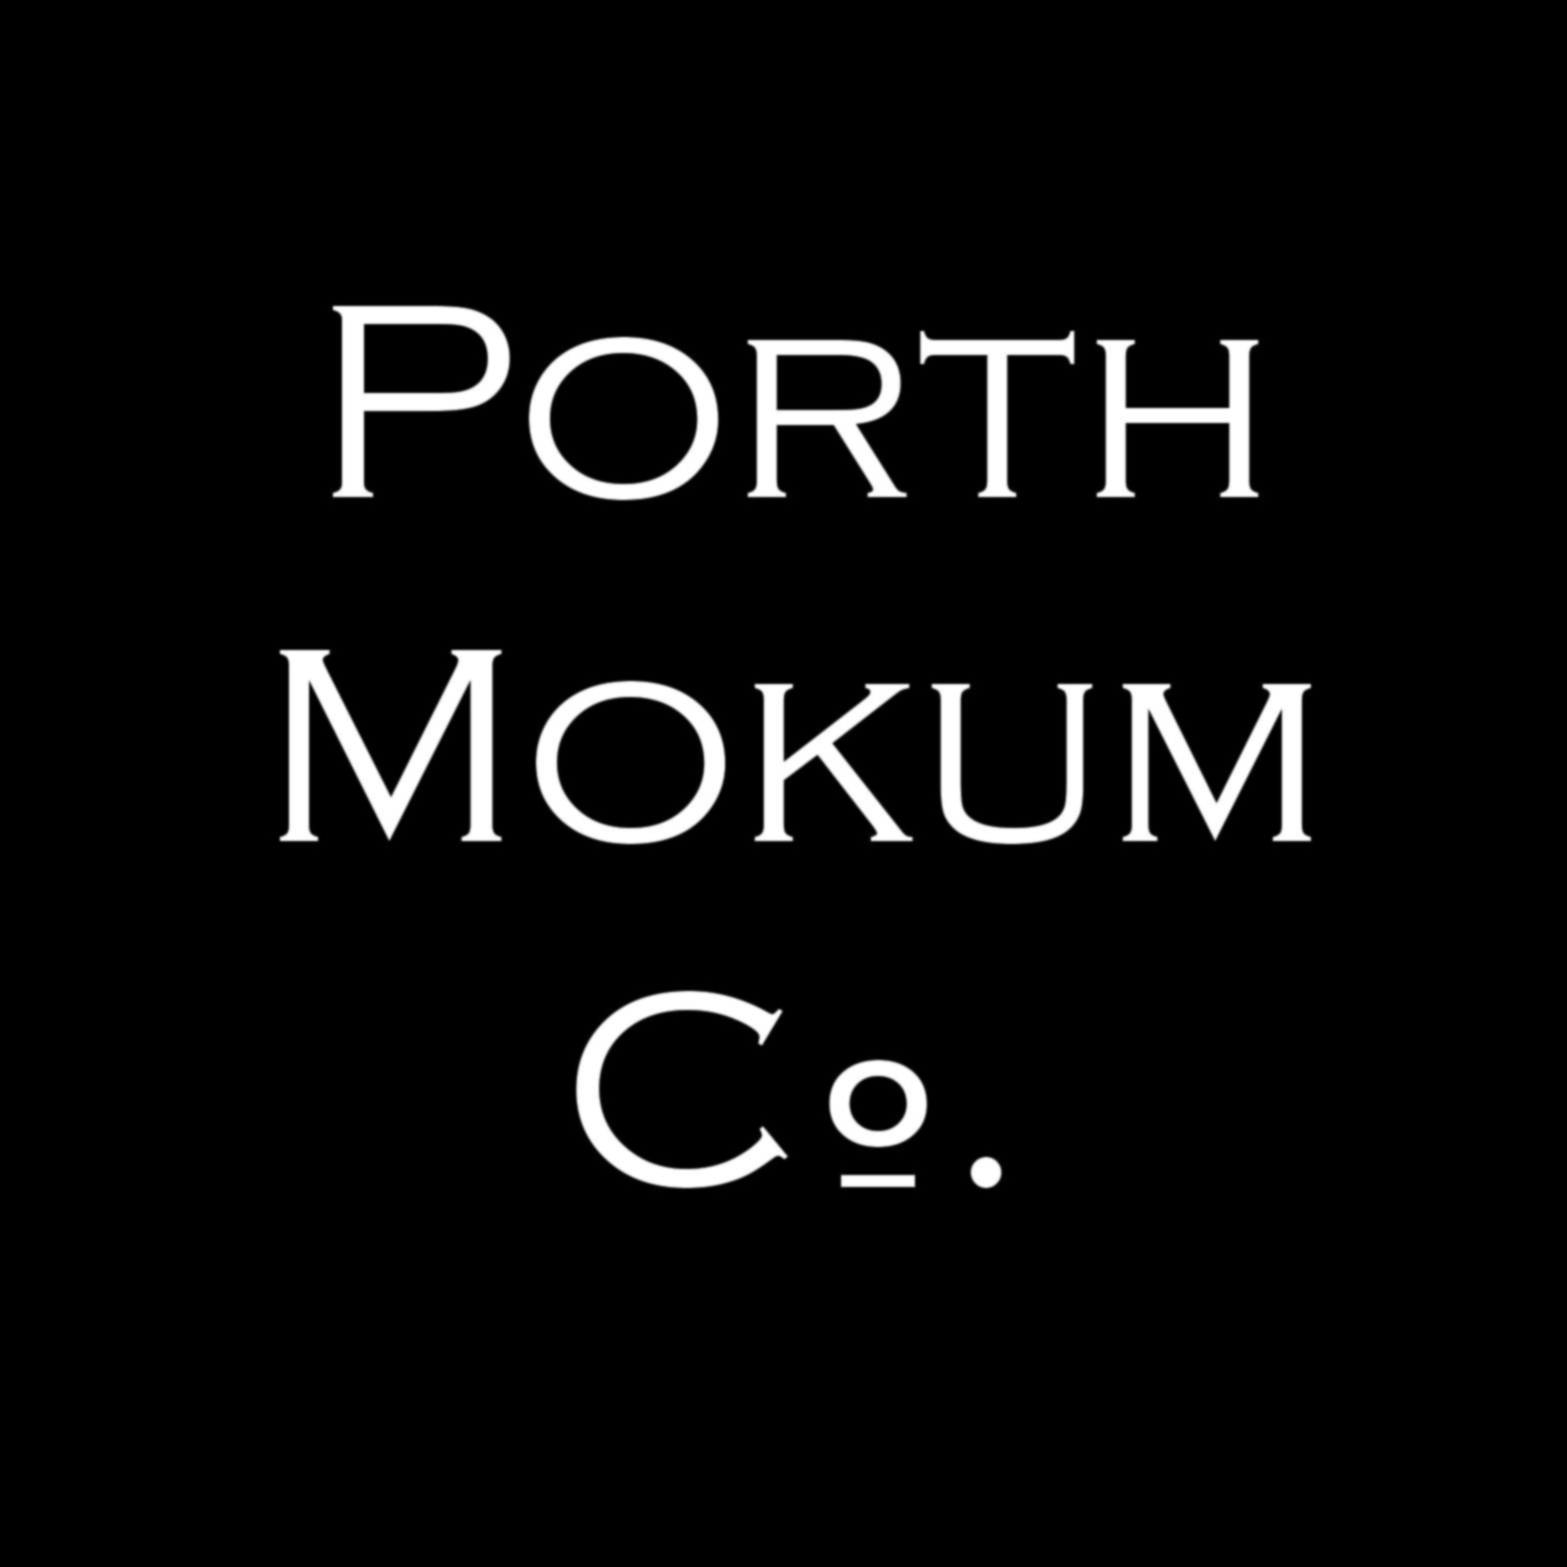 clothing & accessories for Rebels, Pathfinders & Adventurers by Porth Mokum for menswear Leeds. Available at Fabrication Crafts home of independent fashion